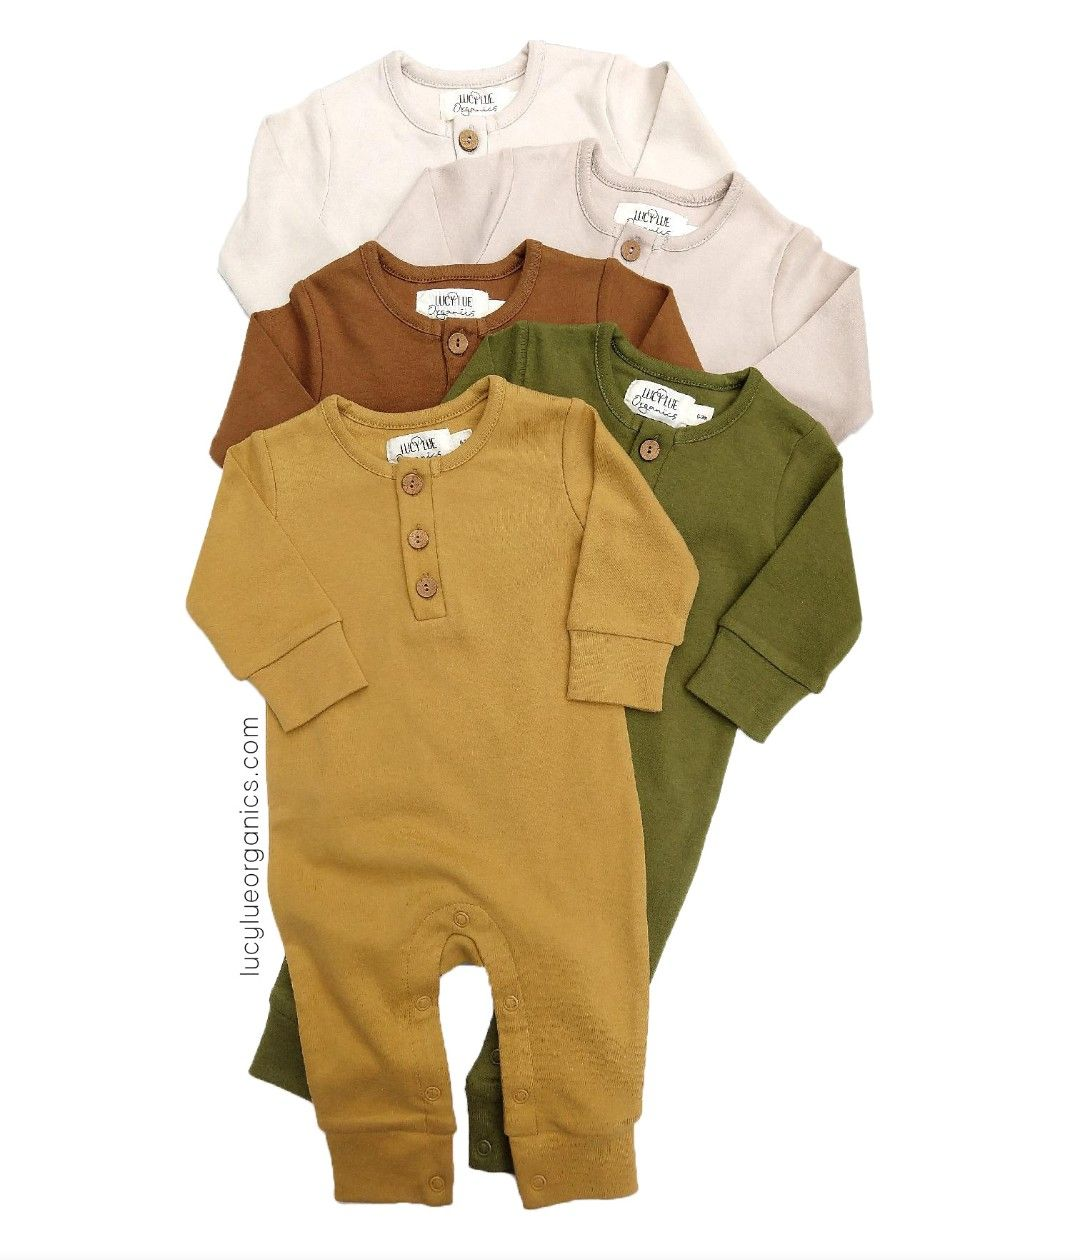 Lucy Lue Organics baby rompers are classic, cozy, and cute! Made in gender neutral colors, this romoer ia great for girl or boy. The perfect baby gift for a new or expecting mom. Shop all of our styles at lucylueorganics.com